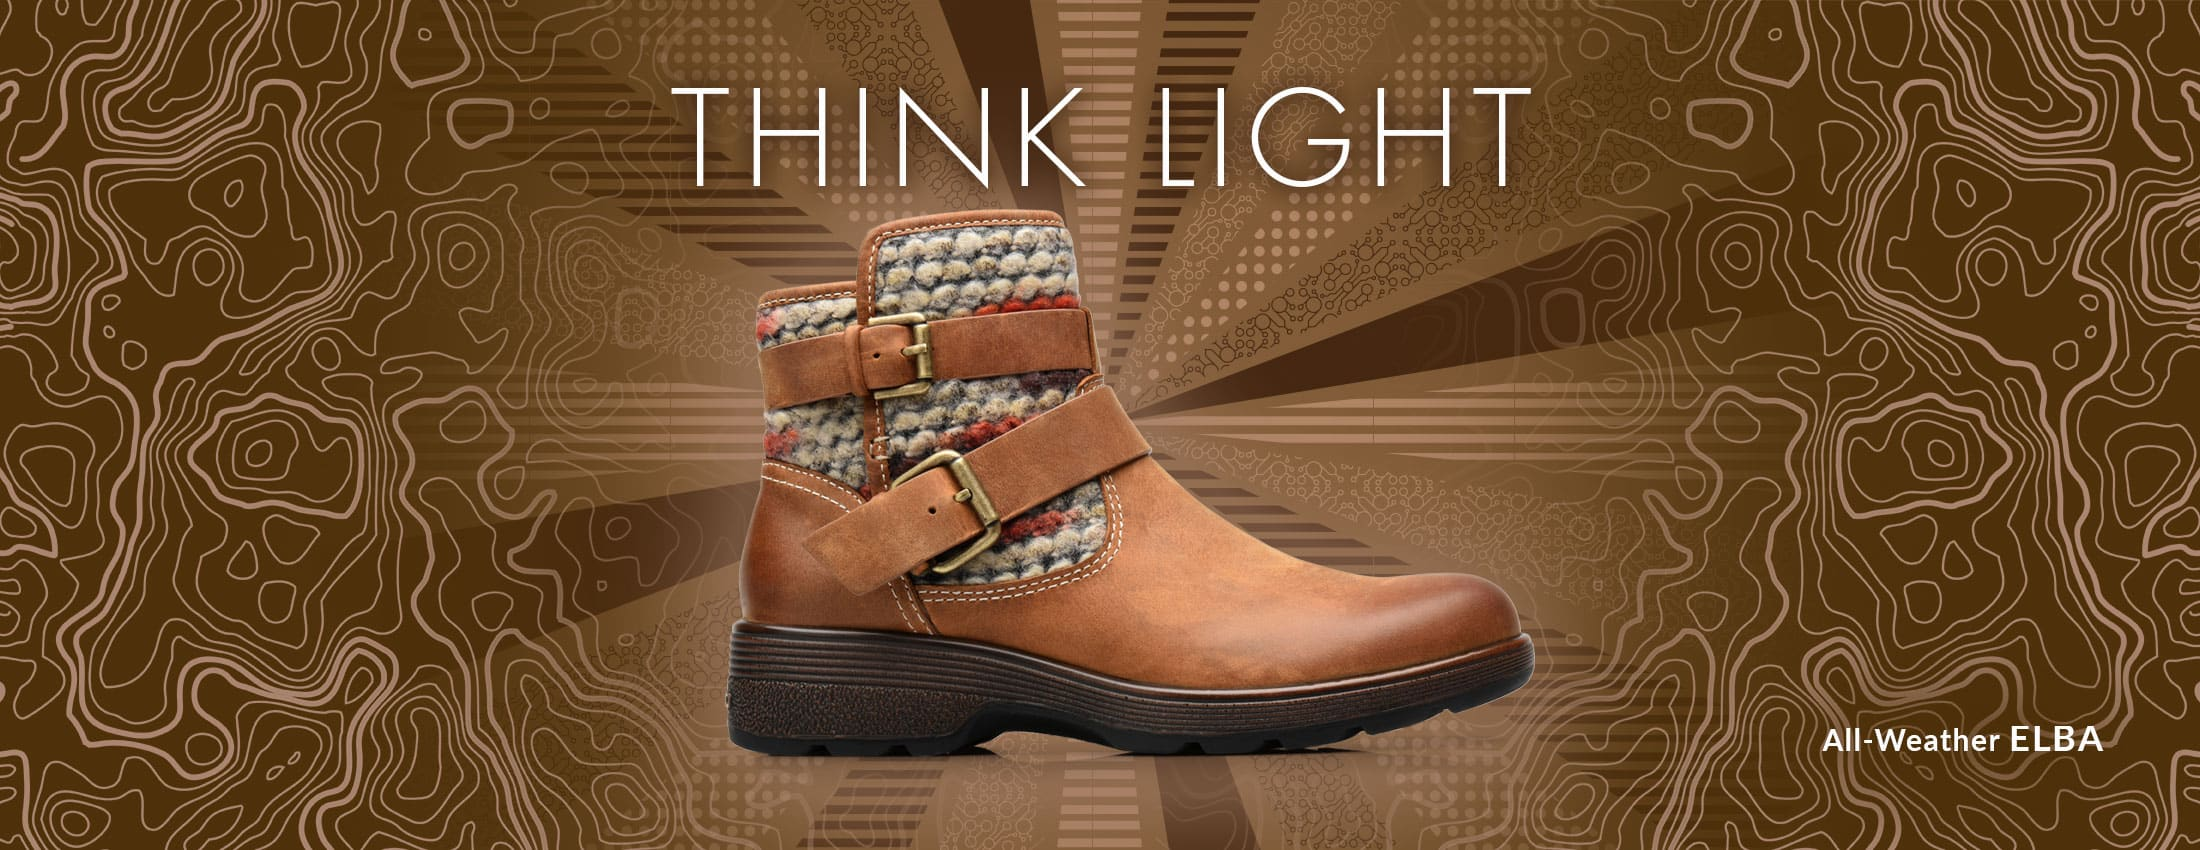 Think Light. Featured style: All-Weather Elba boot, shown in Almond Tan.  Shop Elba now